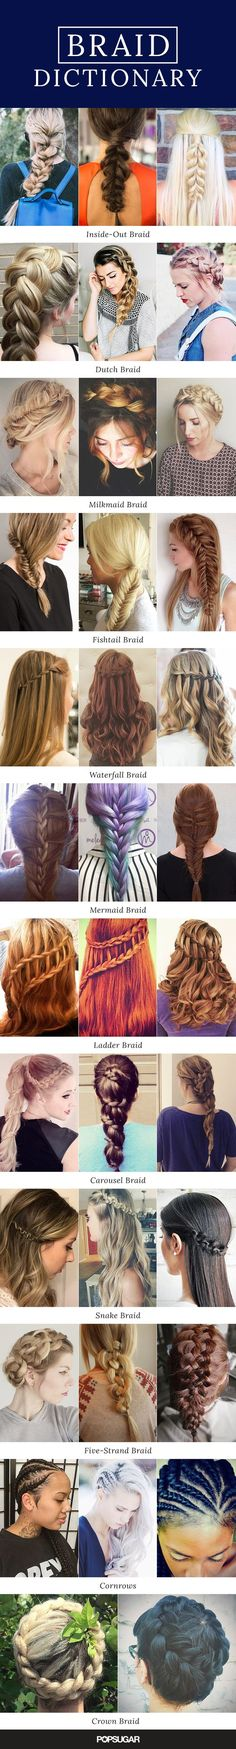 There are so many different braids out there — how many can you create? Everyone wants to master the new trendy style before a new one is invented. So, we've broken down every kind of plait (with gorgeous real-girl pictures and tutorials) for hairstyle inspiration. See photos of inside-out braids, dutch braids, milkmaid braids, fishtail braids, waterfall braids, mermaid braids, ladder braids, carousel braids, snake braids, five-strand braids, cornrows, and crown braids.: